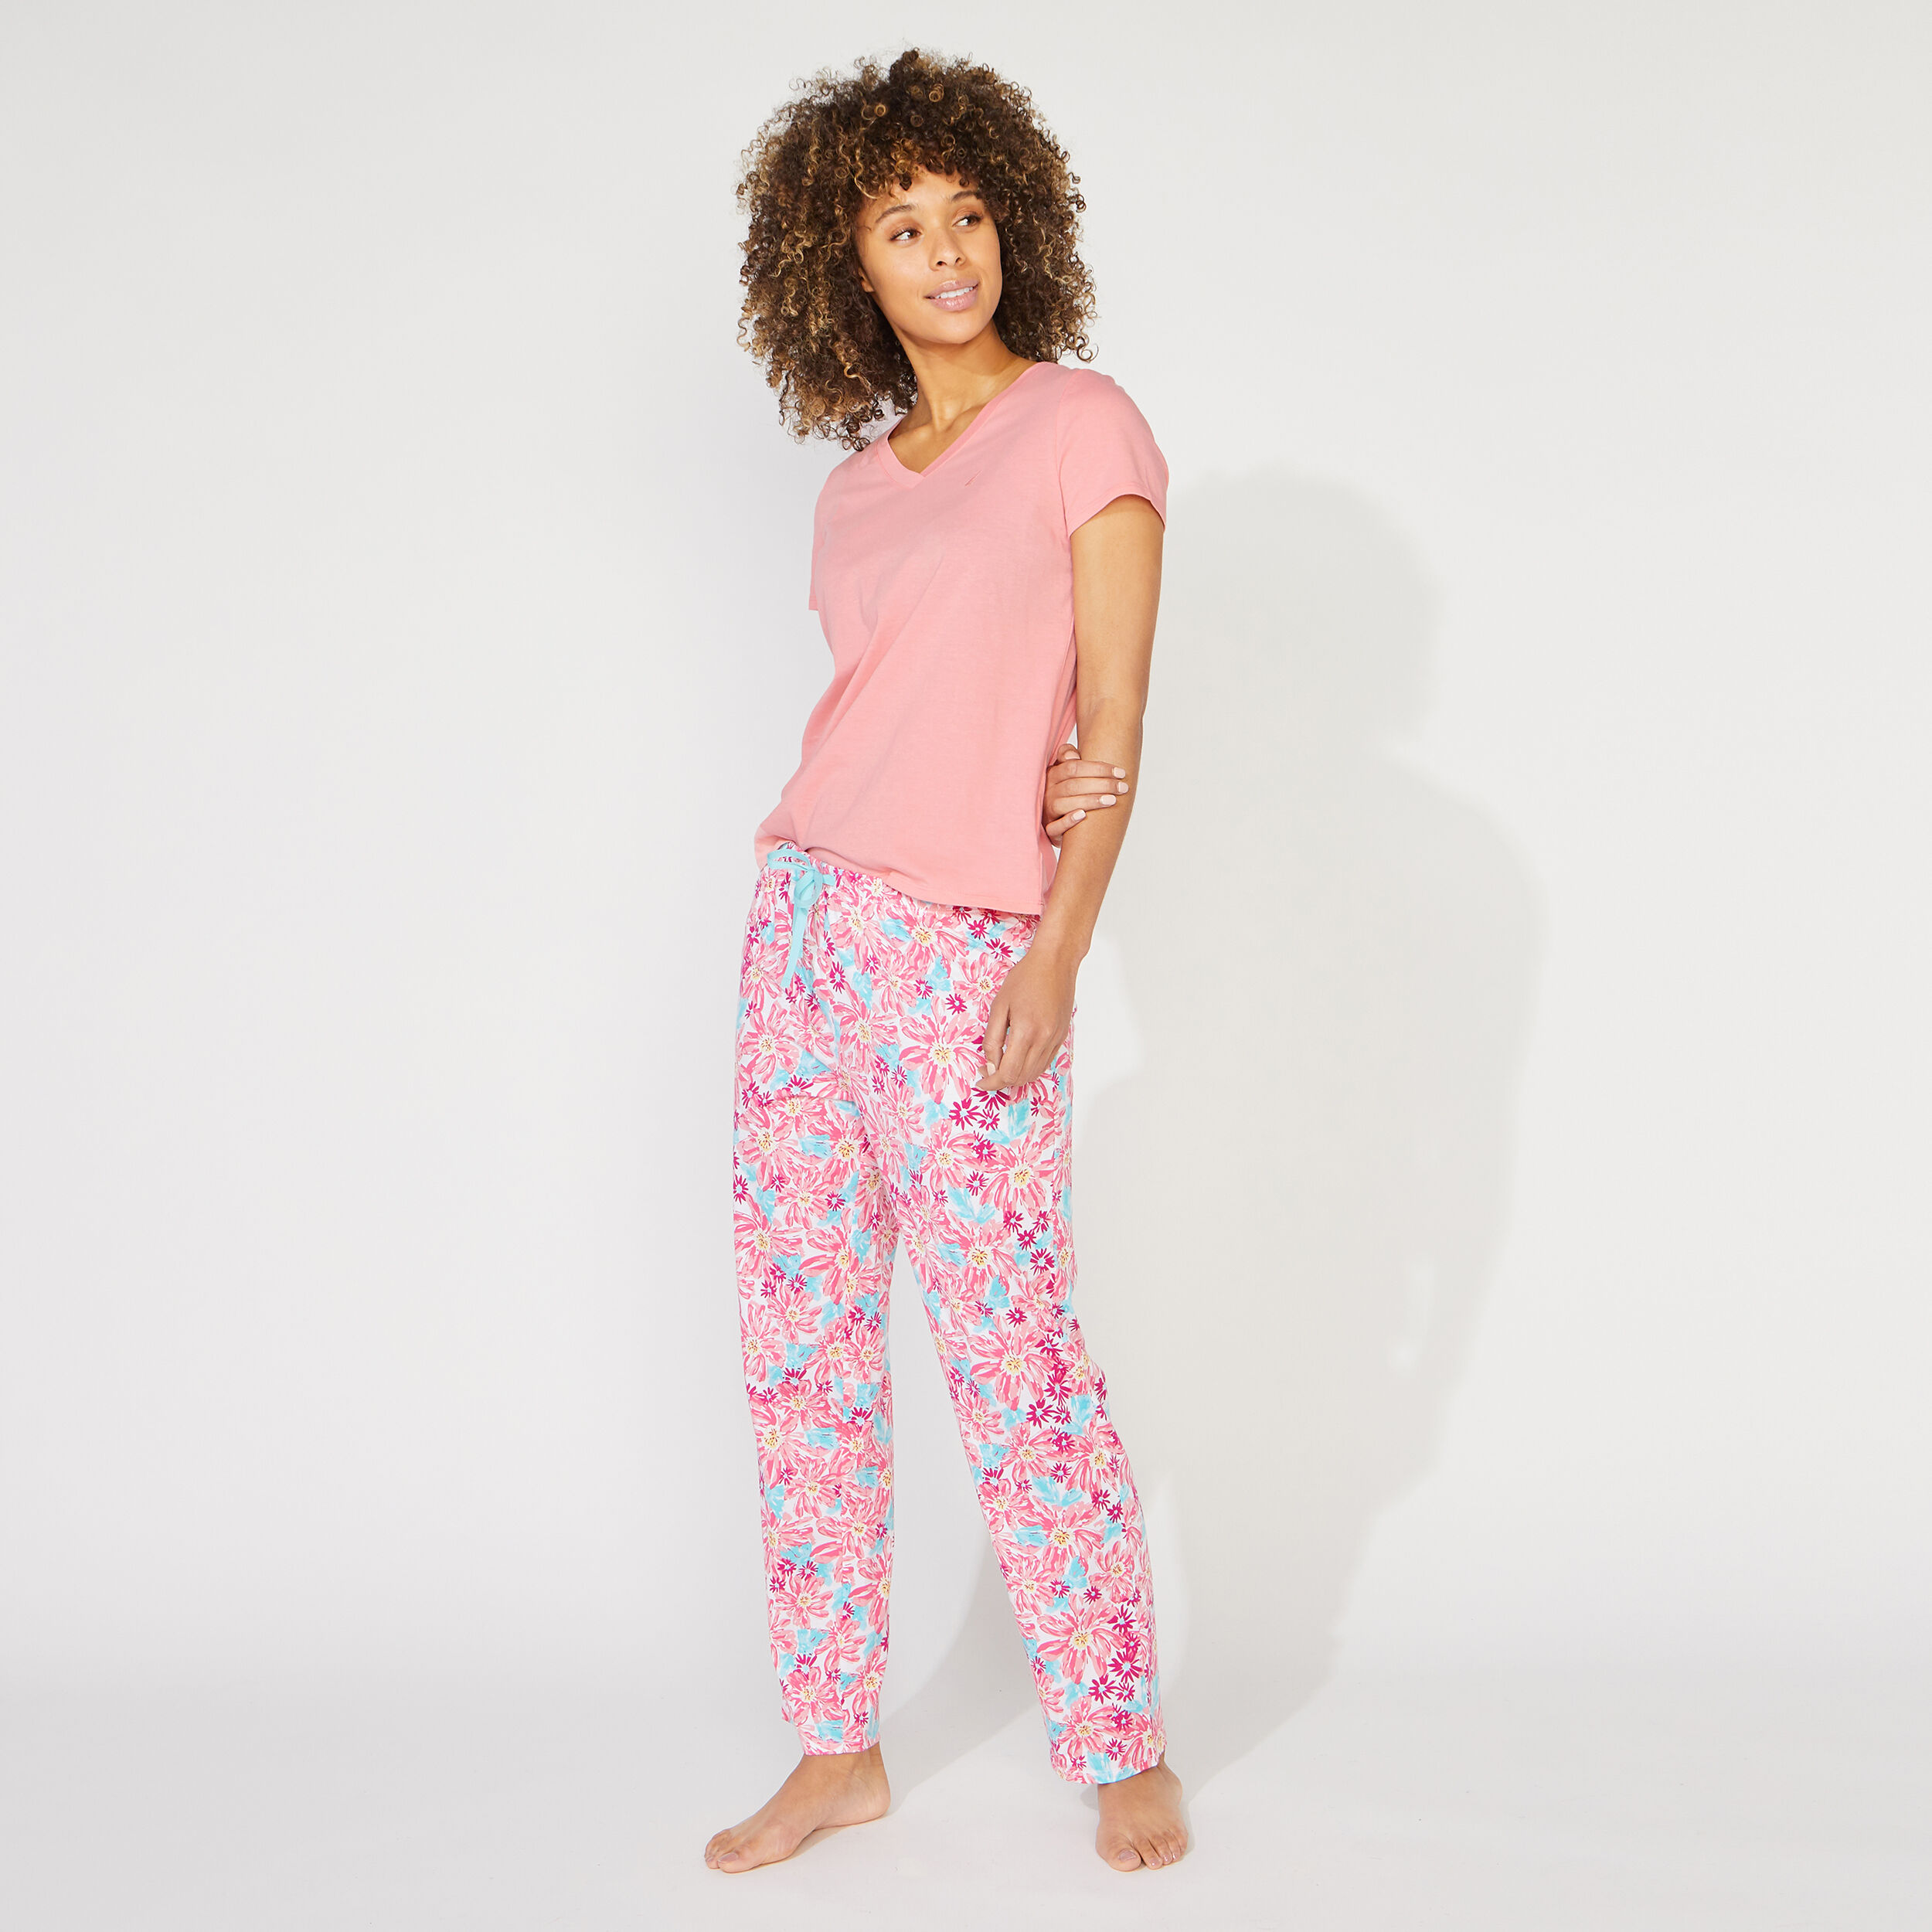 Nautica Womens Short Sleeve Pajama Set In Multi Fish Print